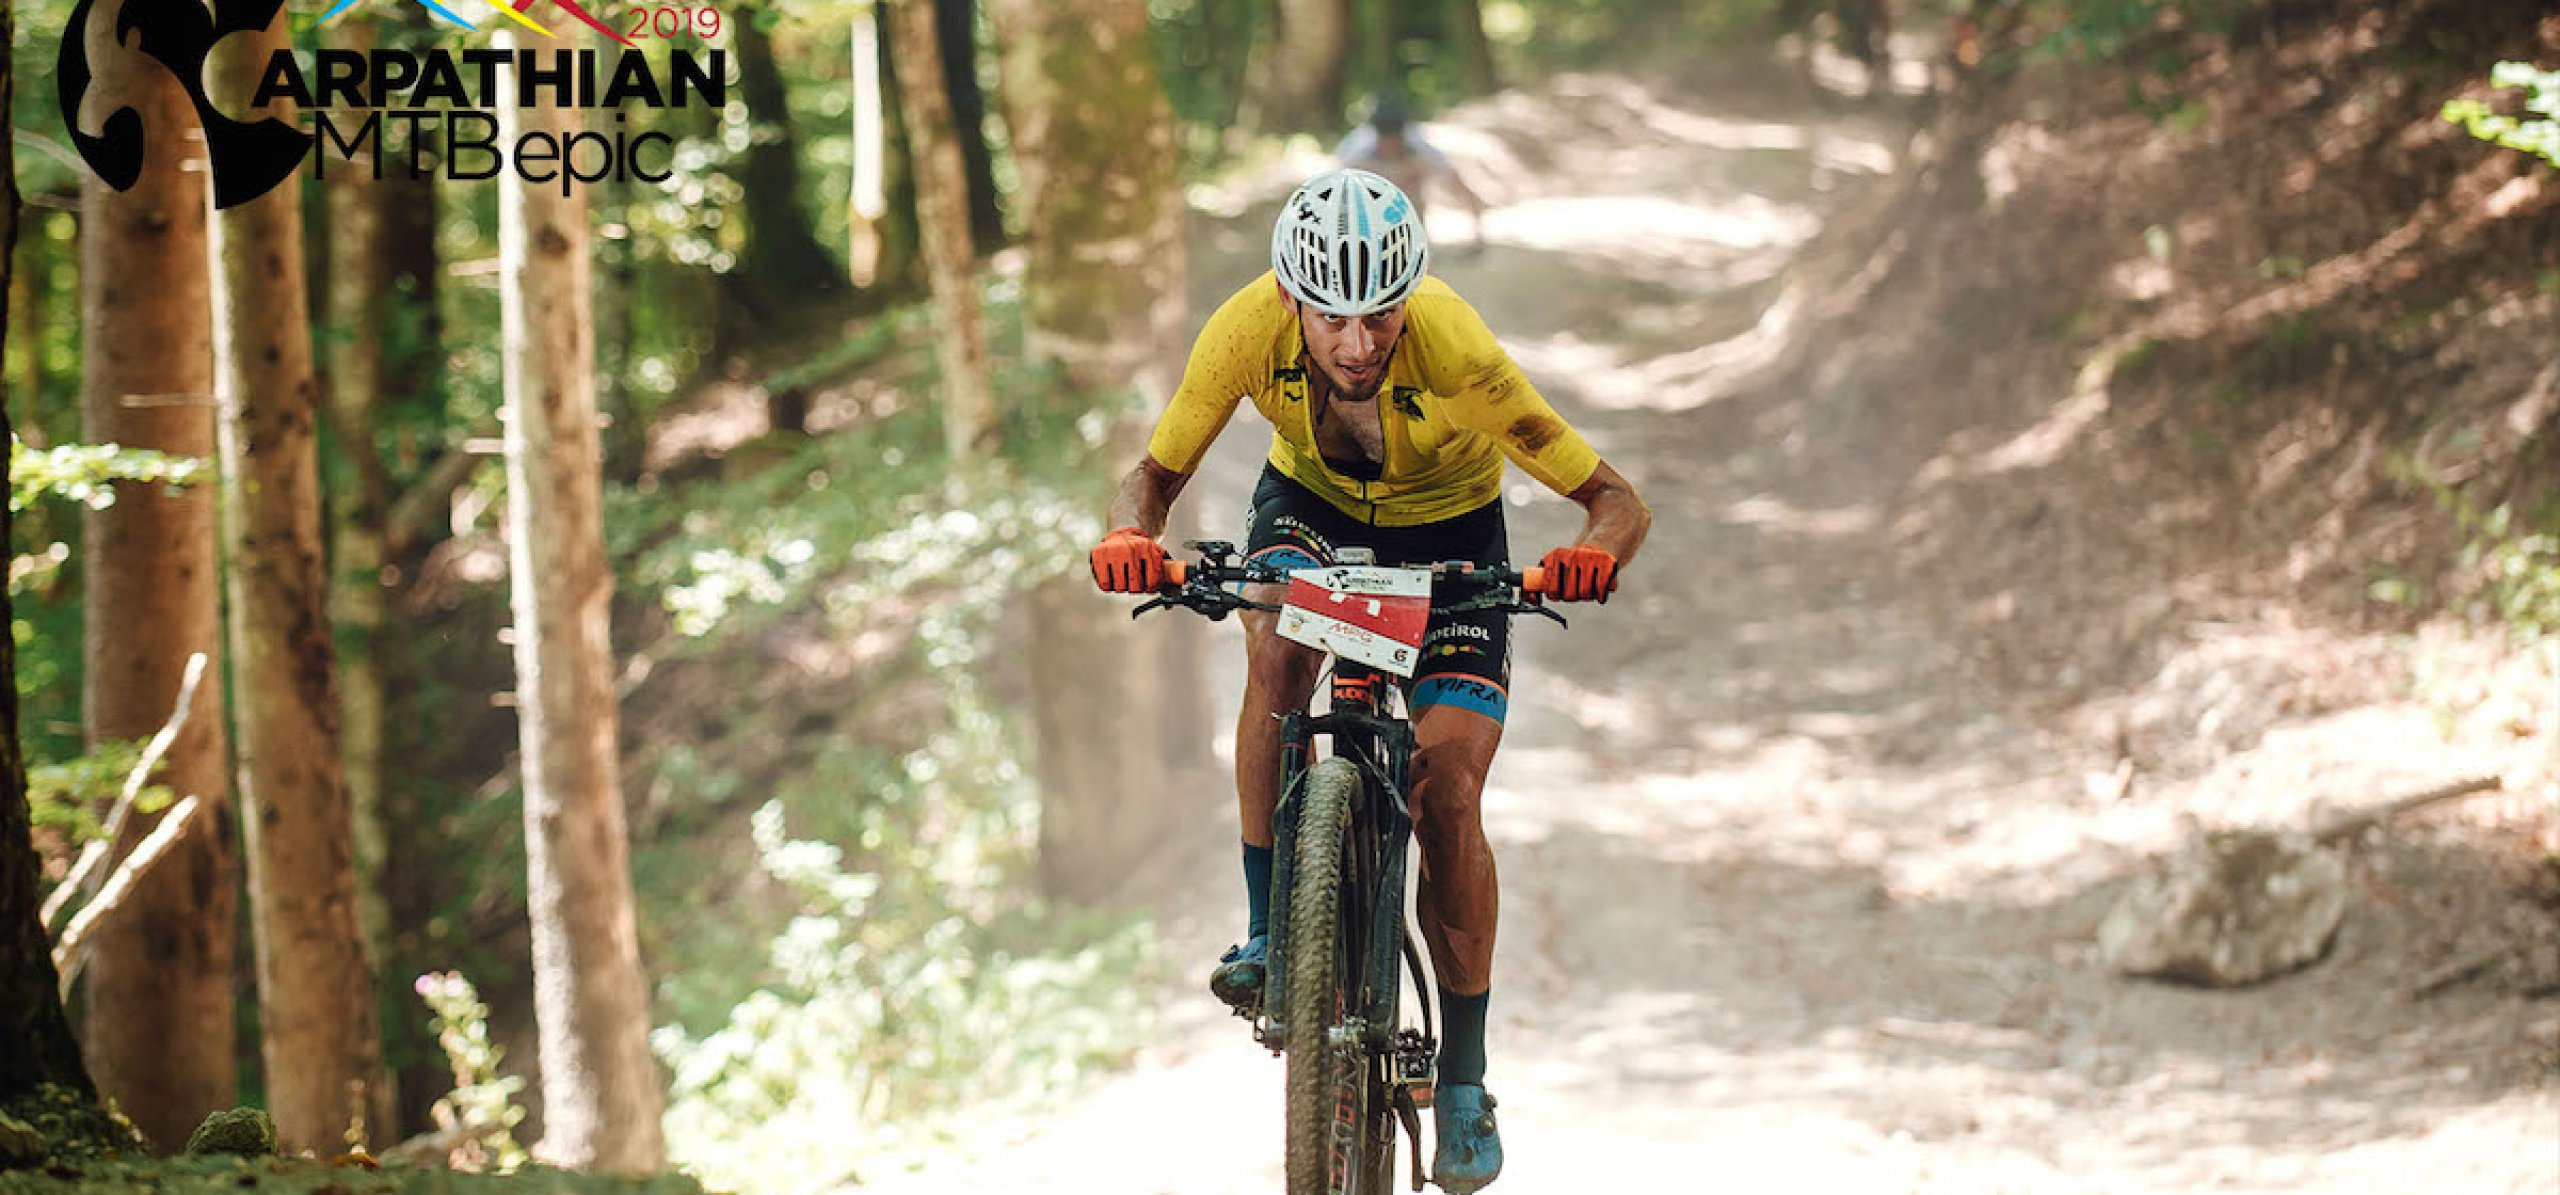 Carpathian MTB Epic 2019